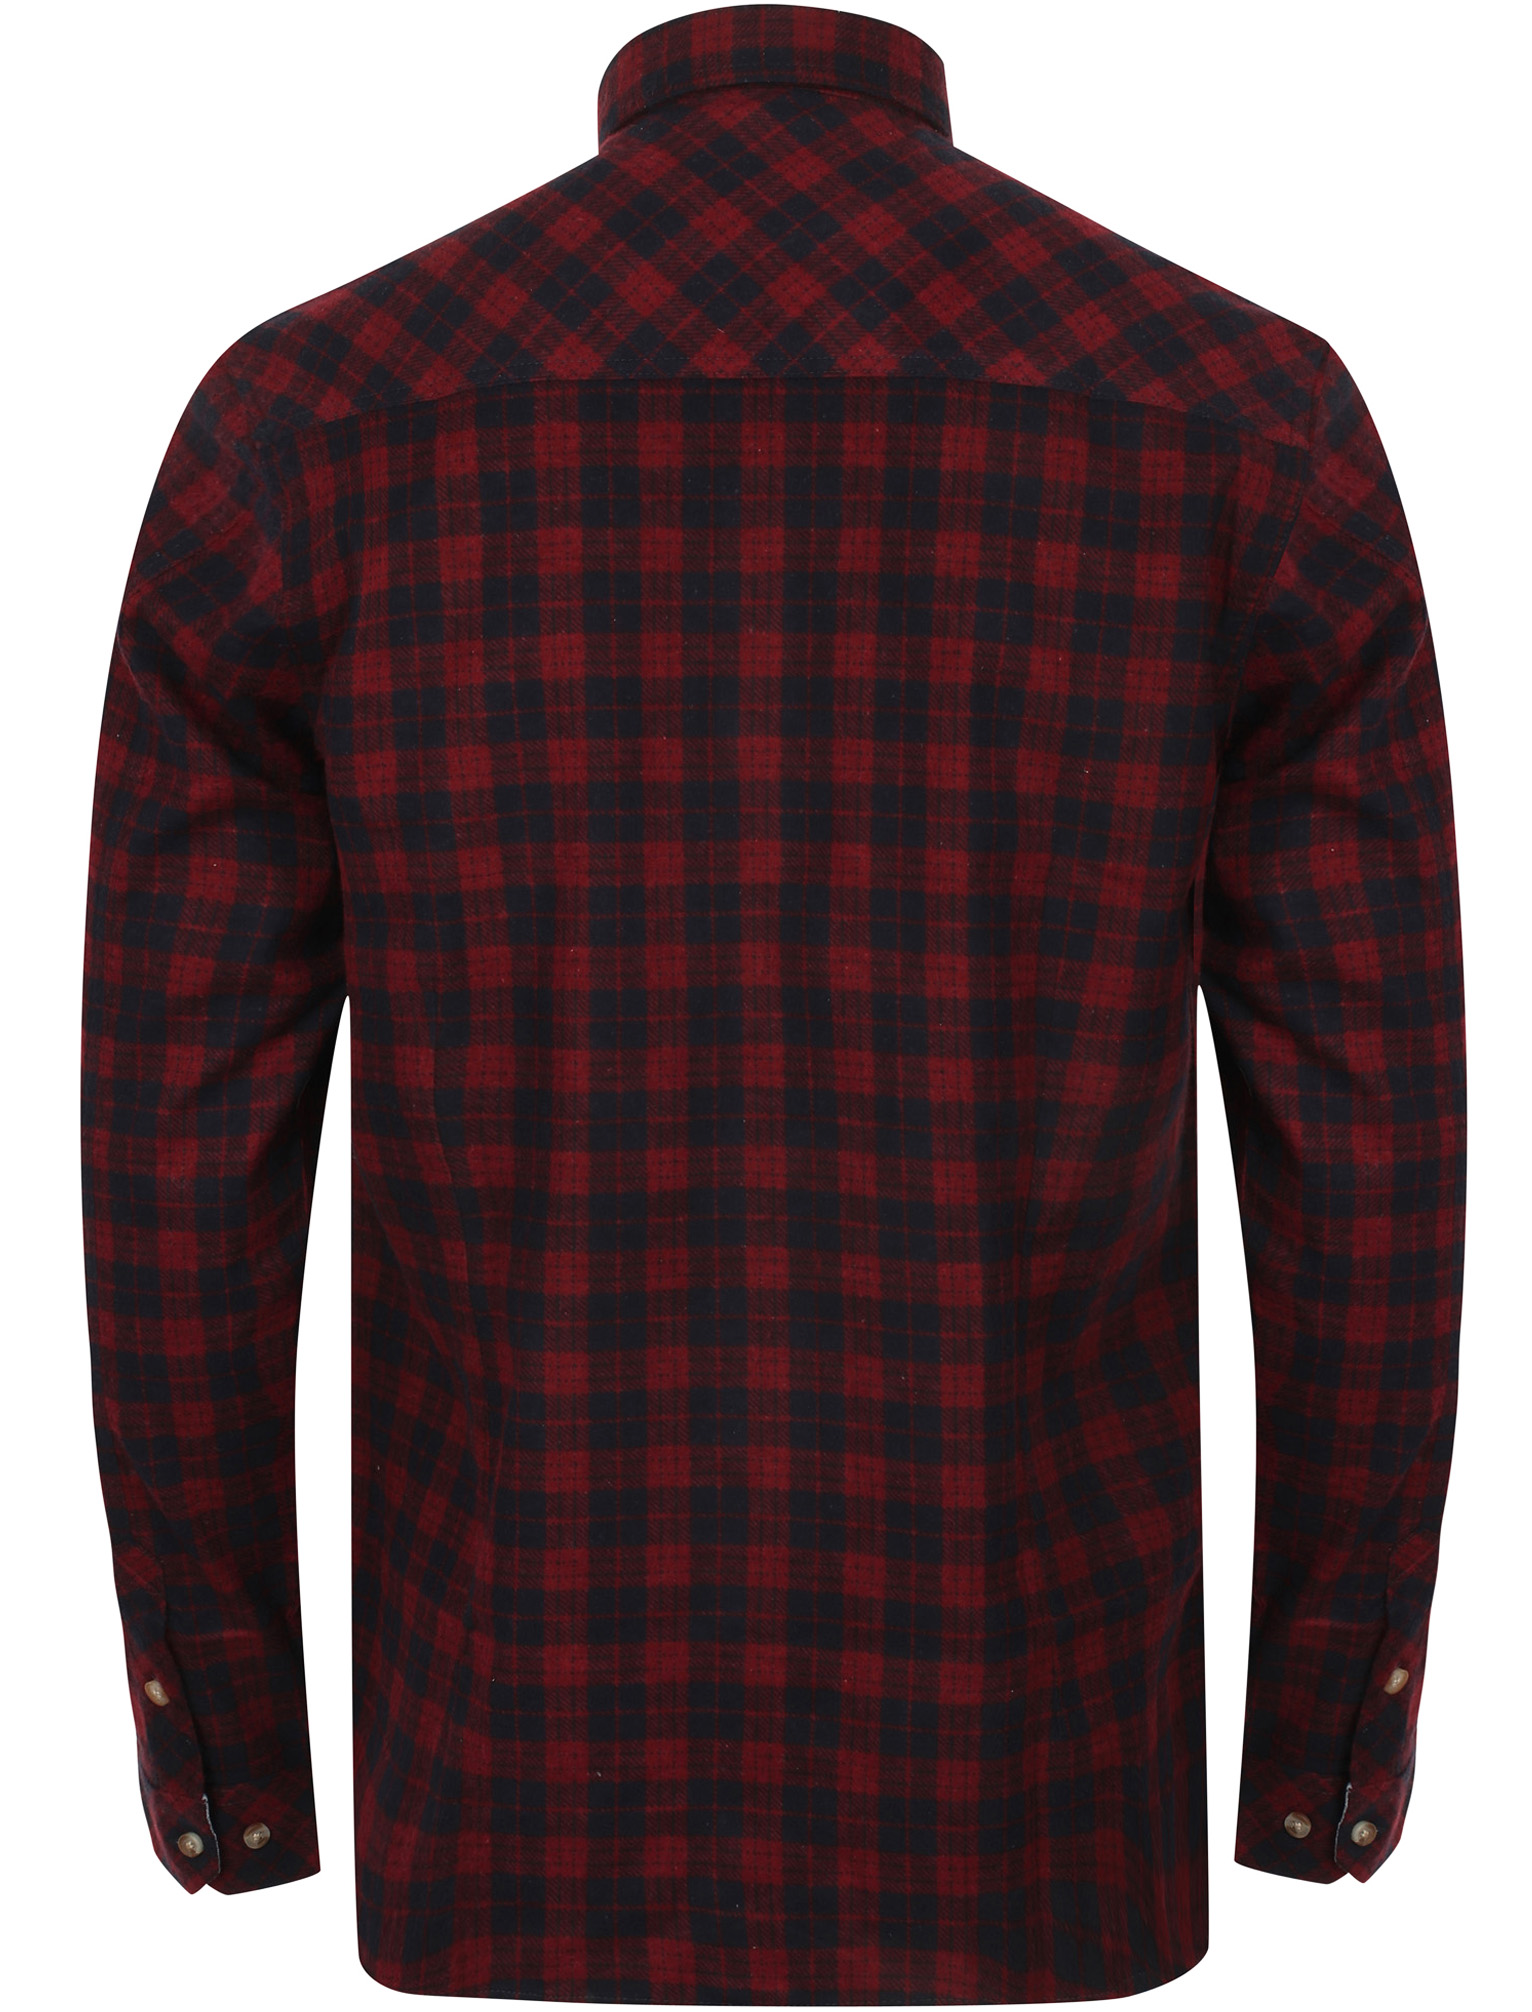 New-Mens-Tokyo-Laundry-Cotton-Long-Sleeve-Checked-Flannel-Shirt-Size-S-XL thumbnail 16